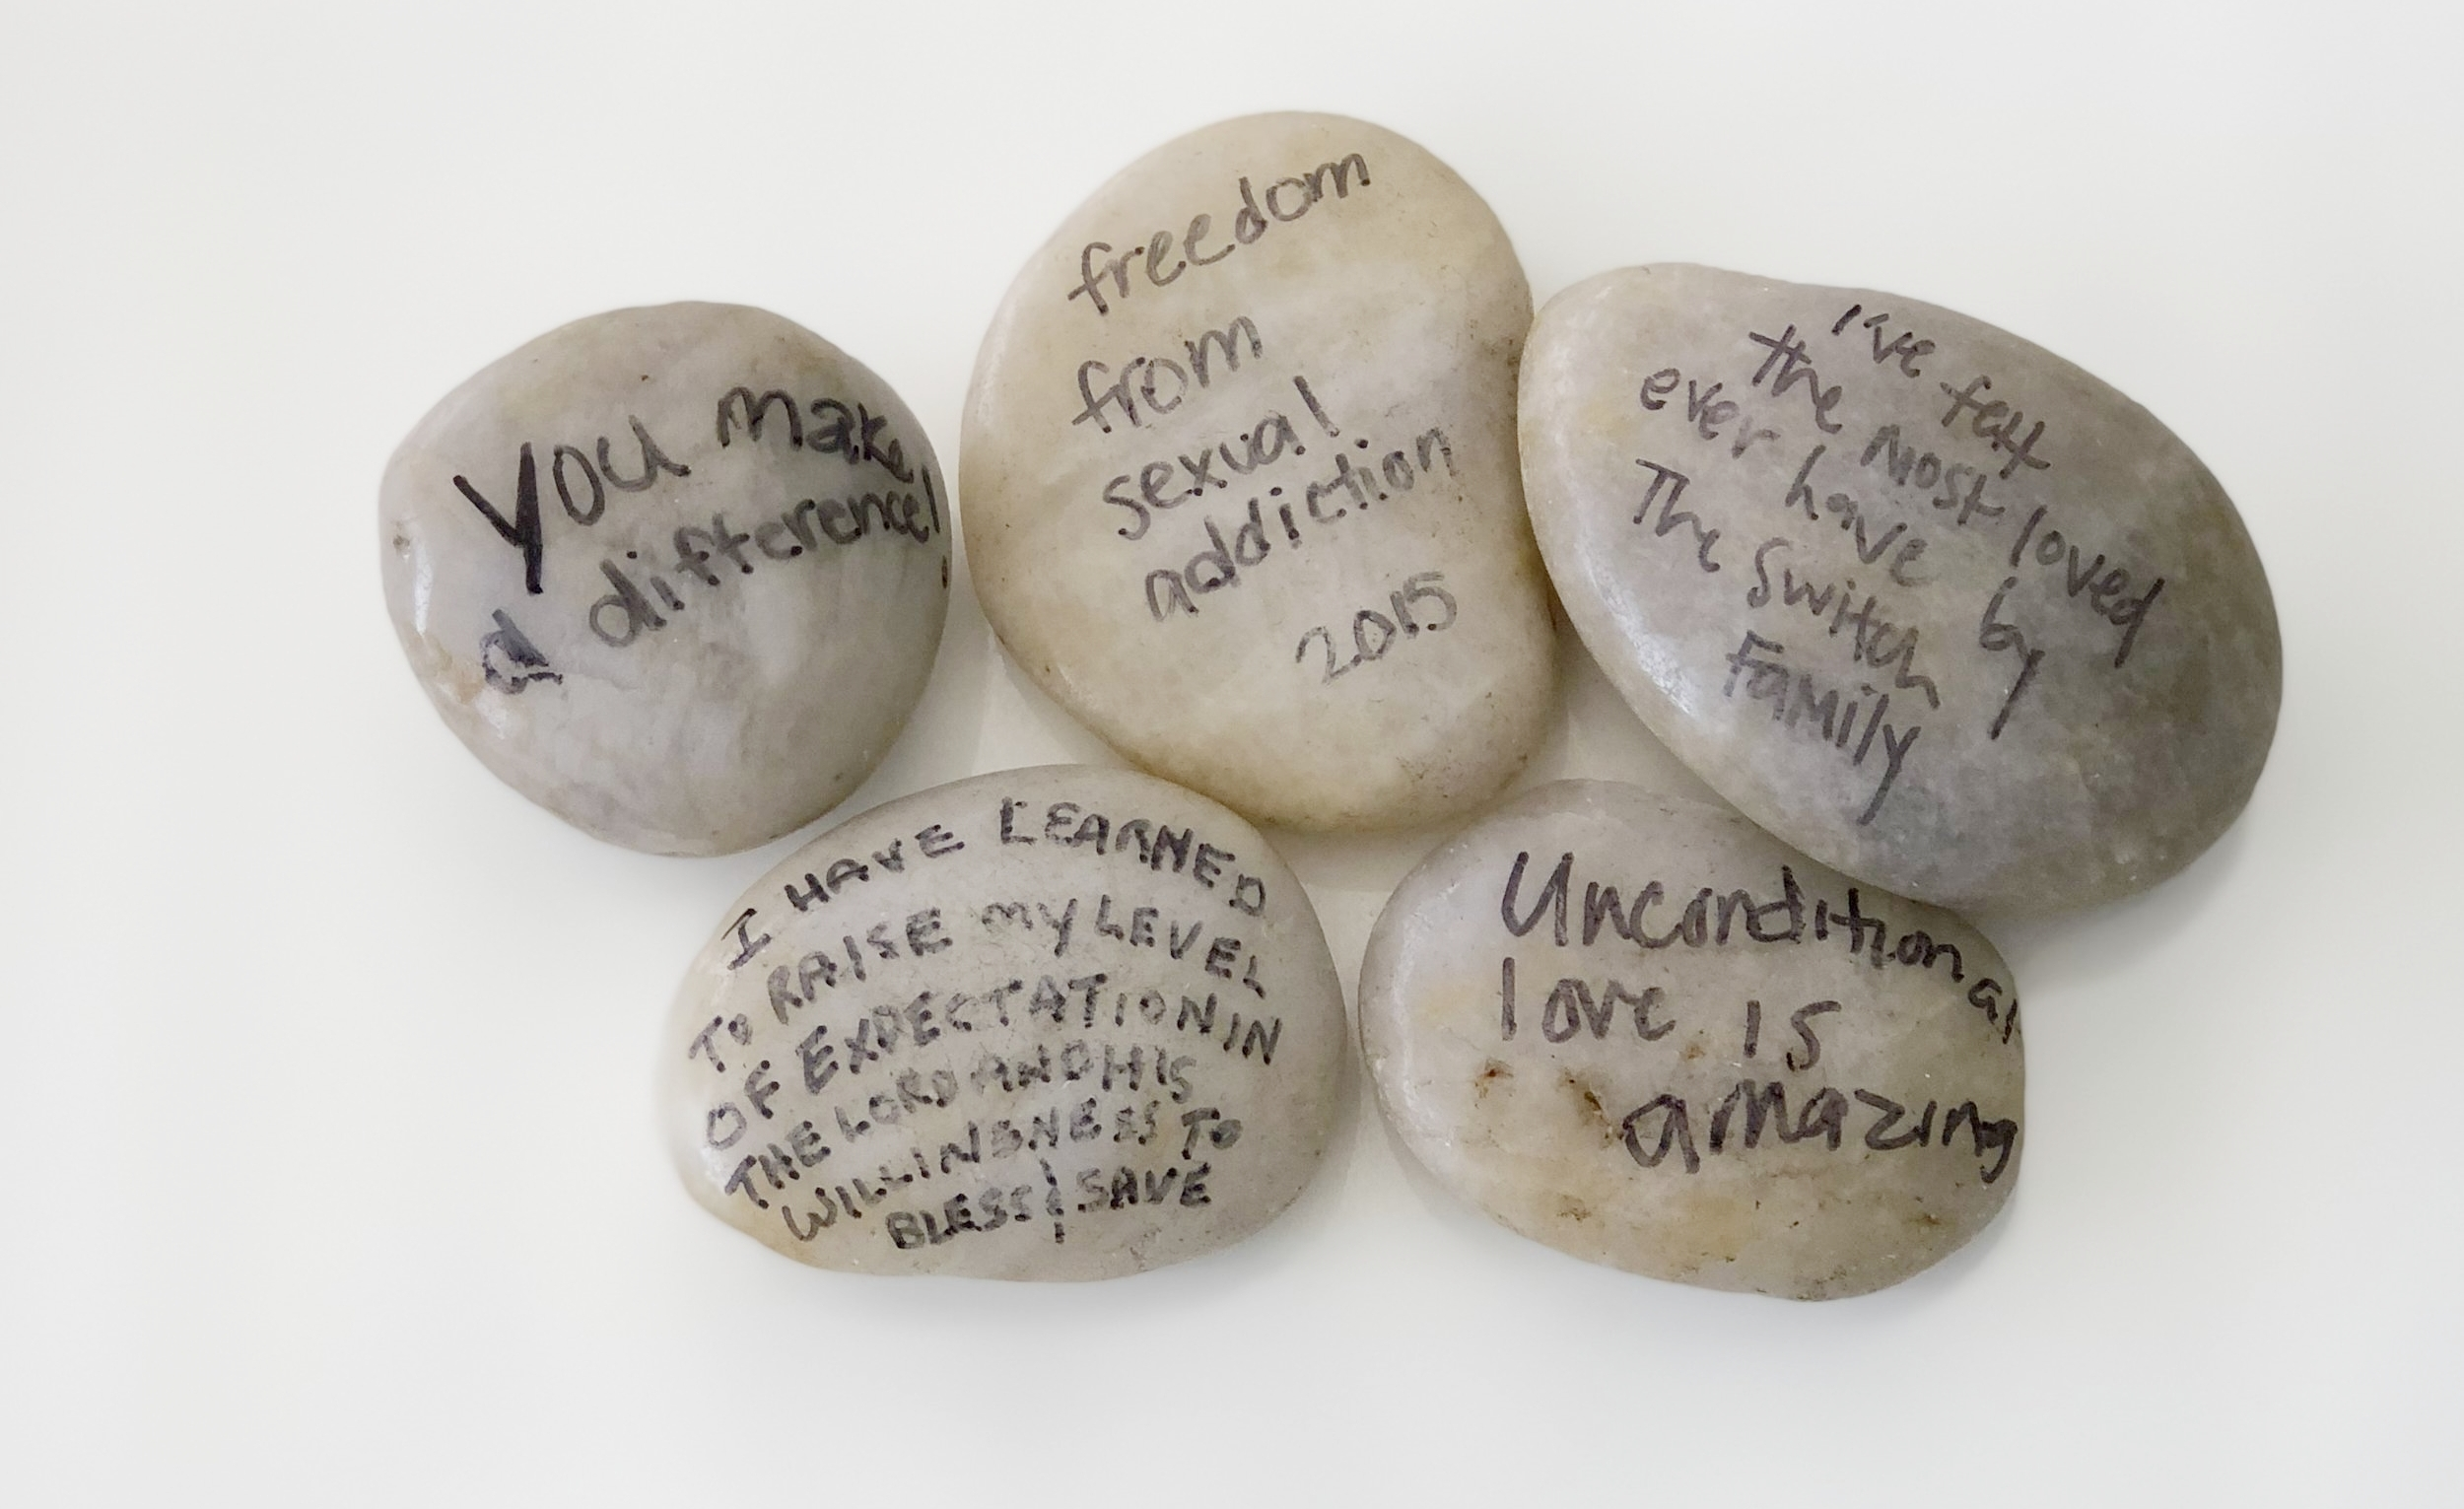 Our stone pile. There are many stones around our office celebrating the successes we have seen written by participants, staff, board and volunteers.